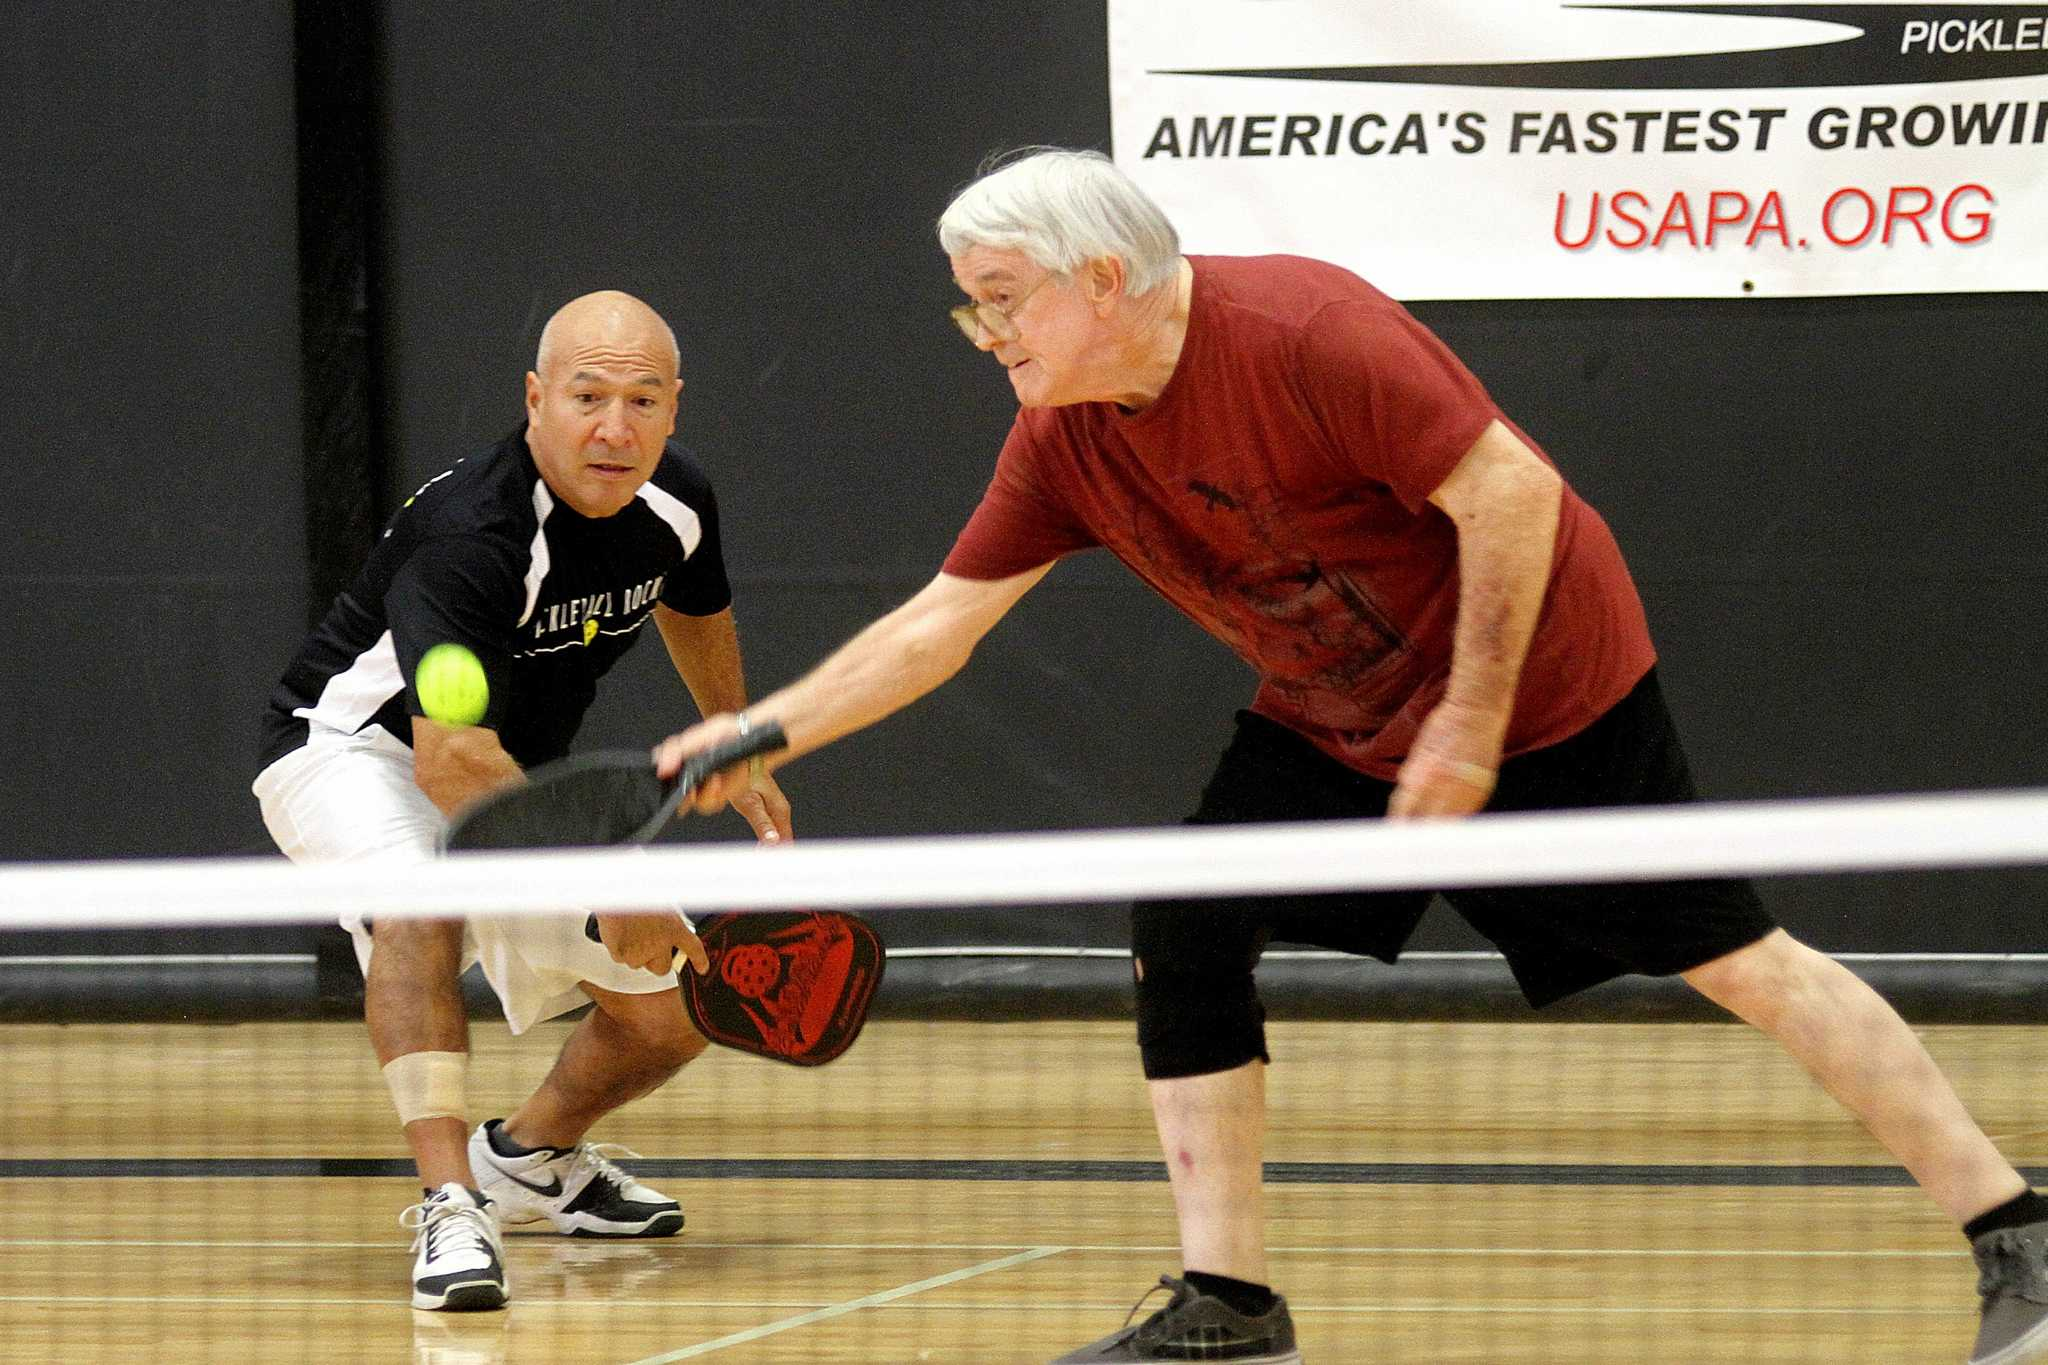 Playing Pickleball A Sweet Pleasure For Many Houston